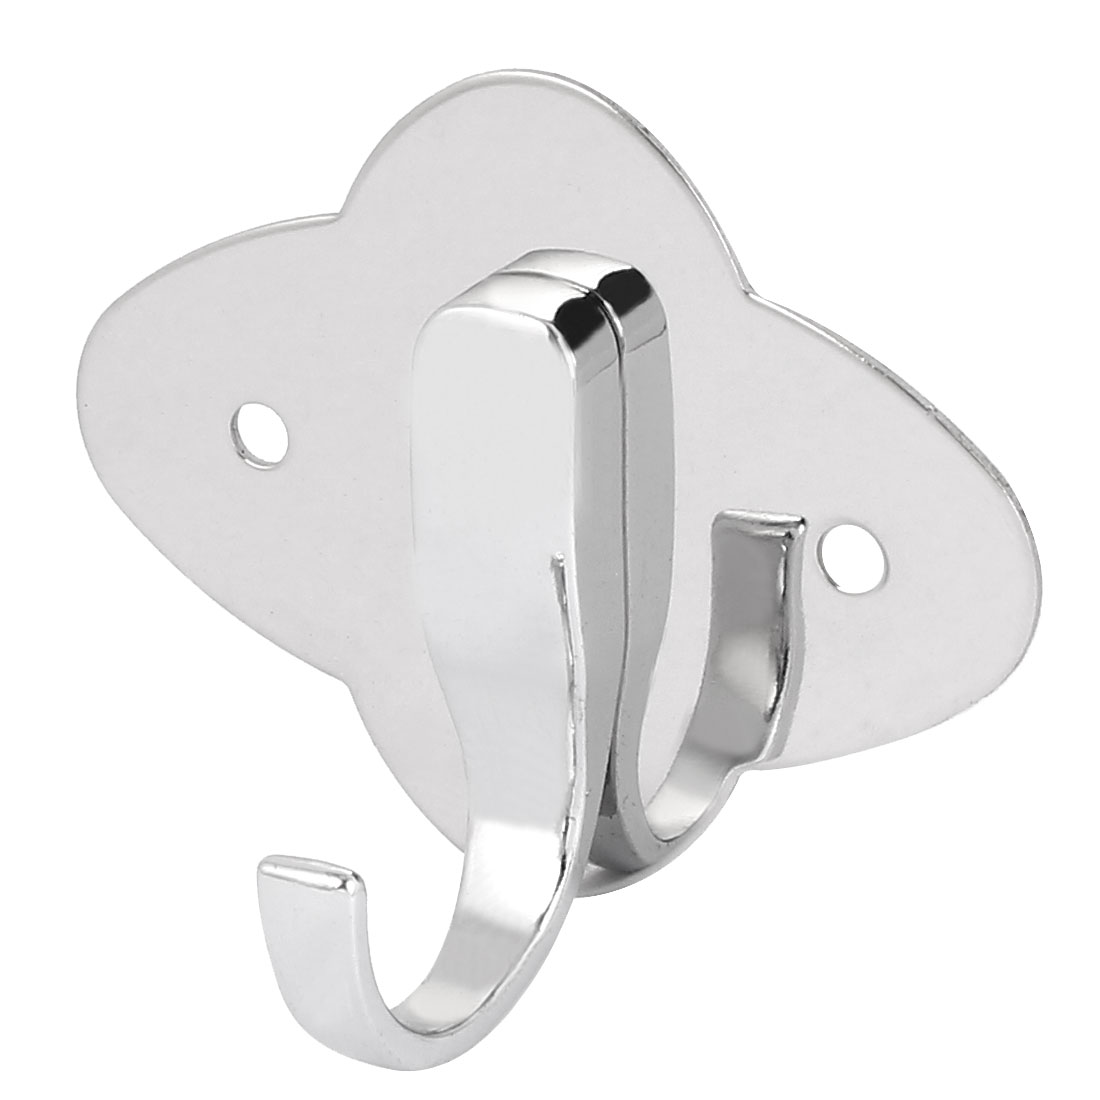 Bathroom Clothes Hat Single Hanger Stainless Steel Wall Mount Hanging Hook